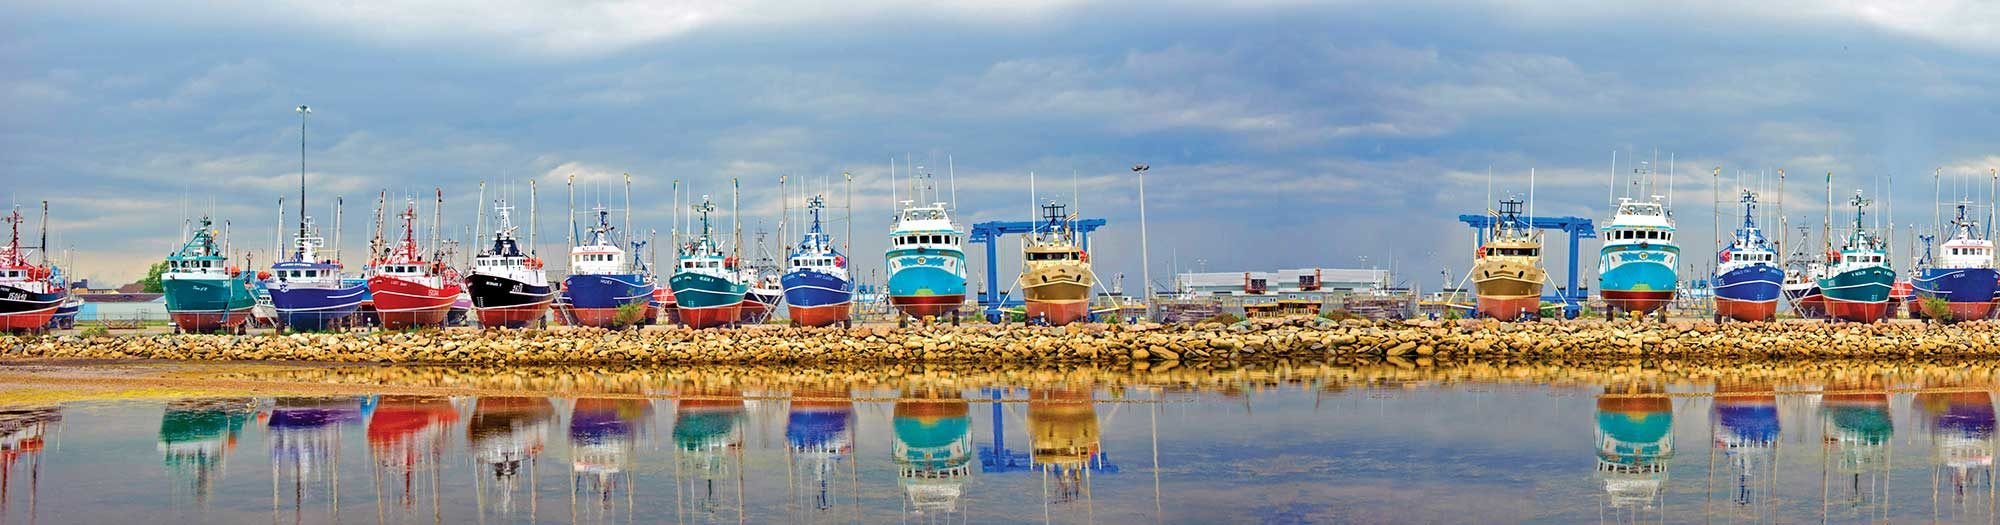 boats-fishing-harbour-canada